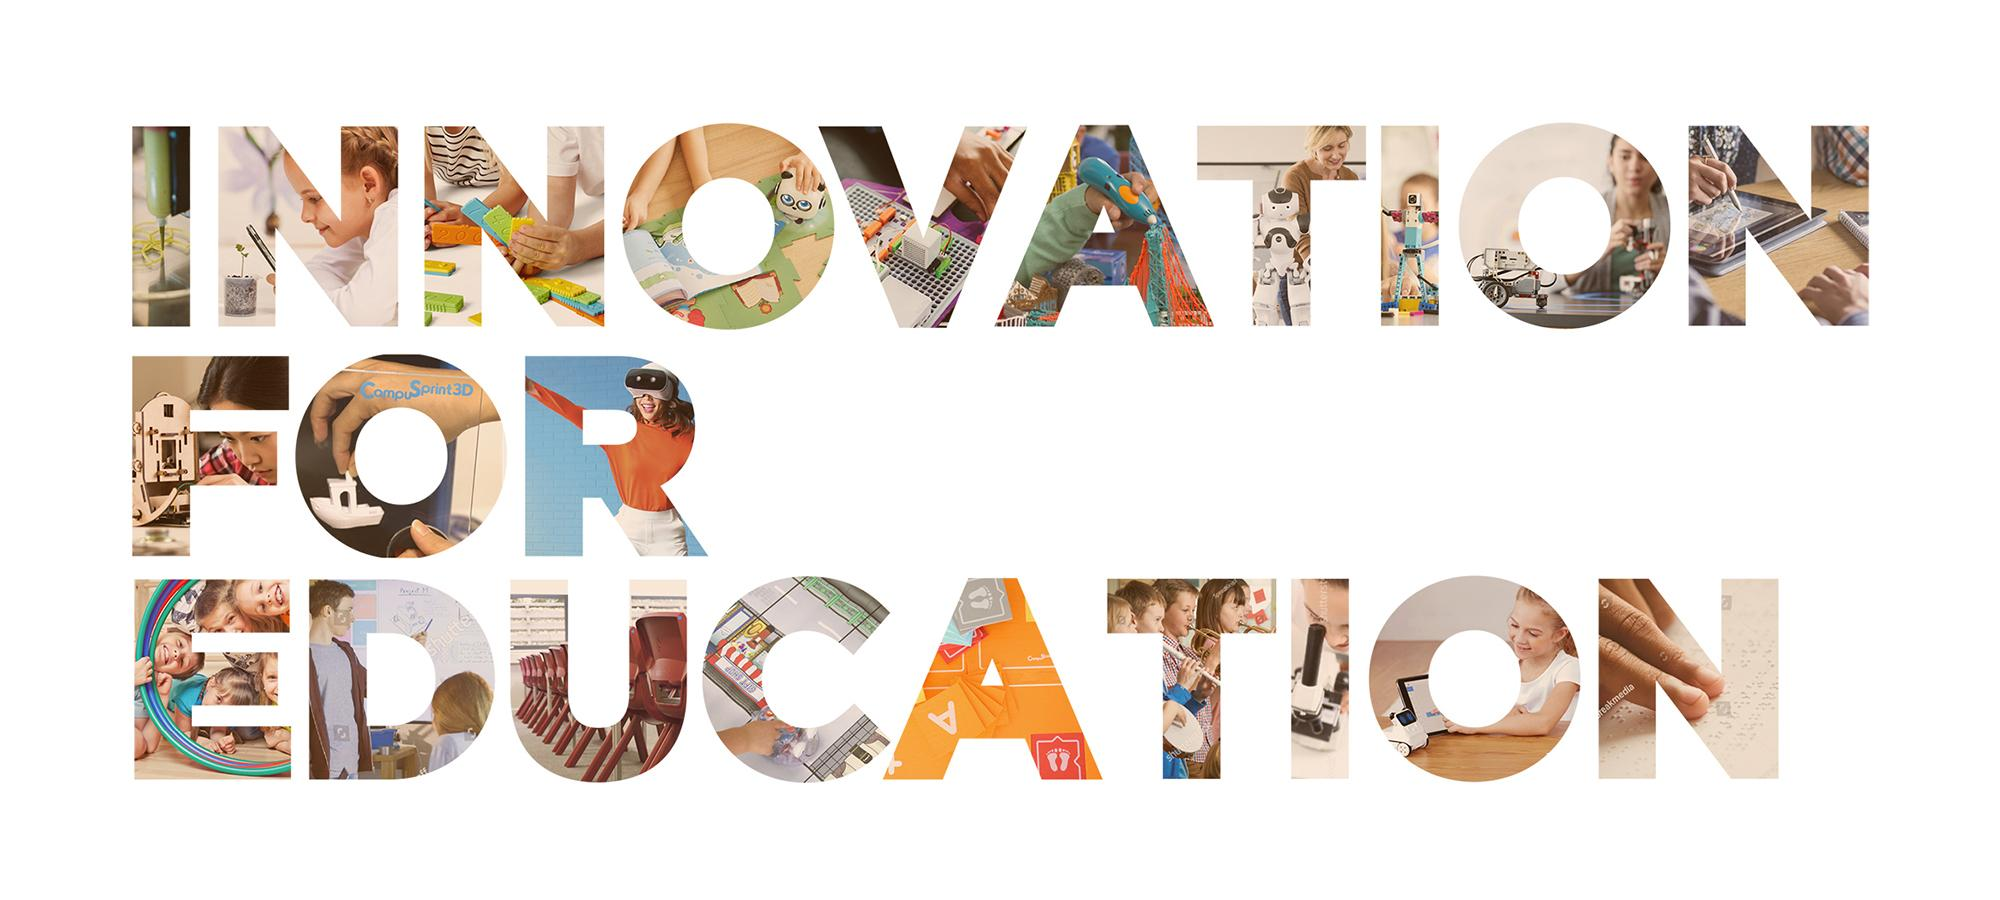 CampuStore: Innovation for Education